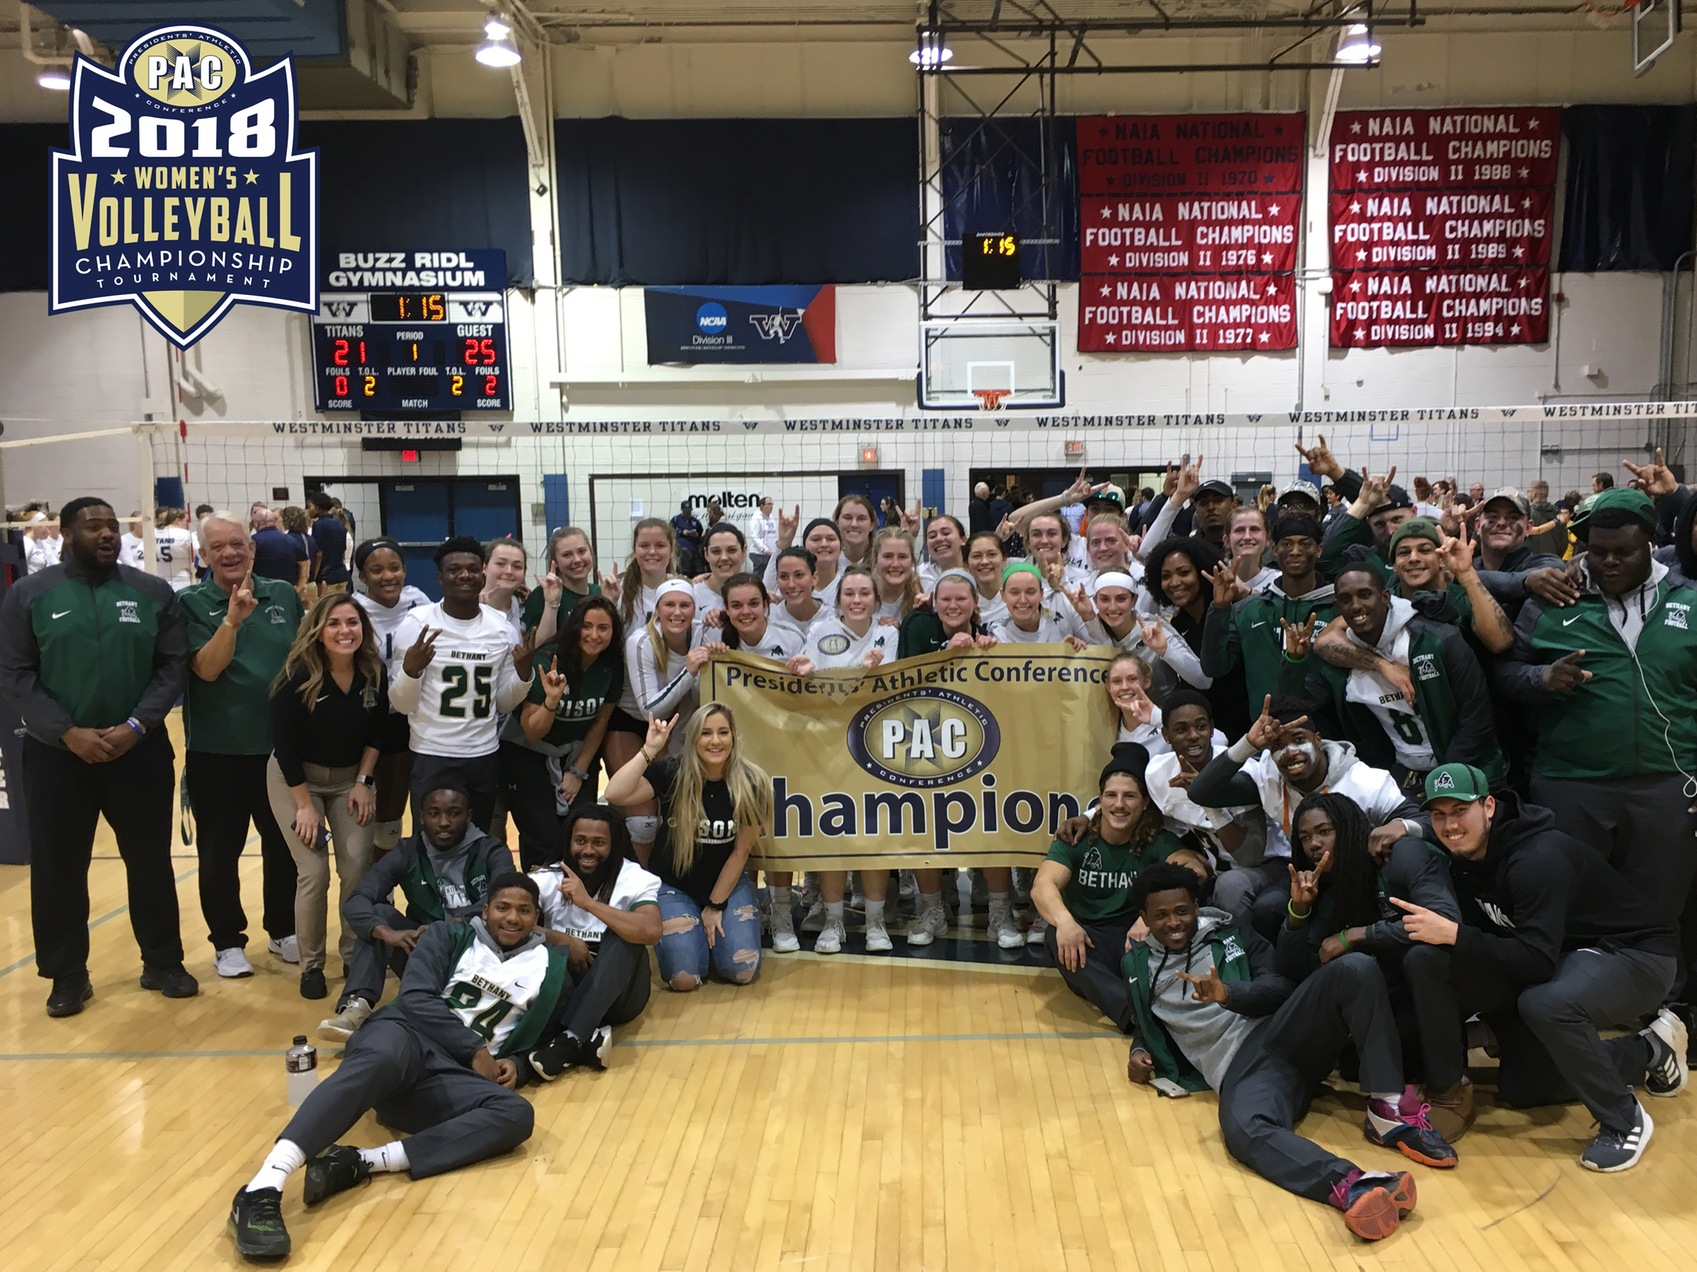 Bethany Clinches PAC Championship Title With Sweep Over Westminster